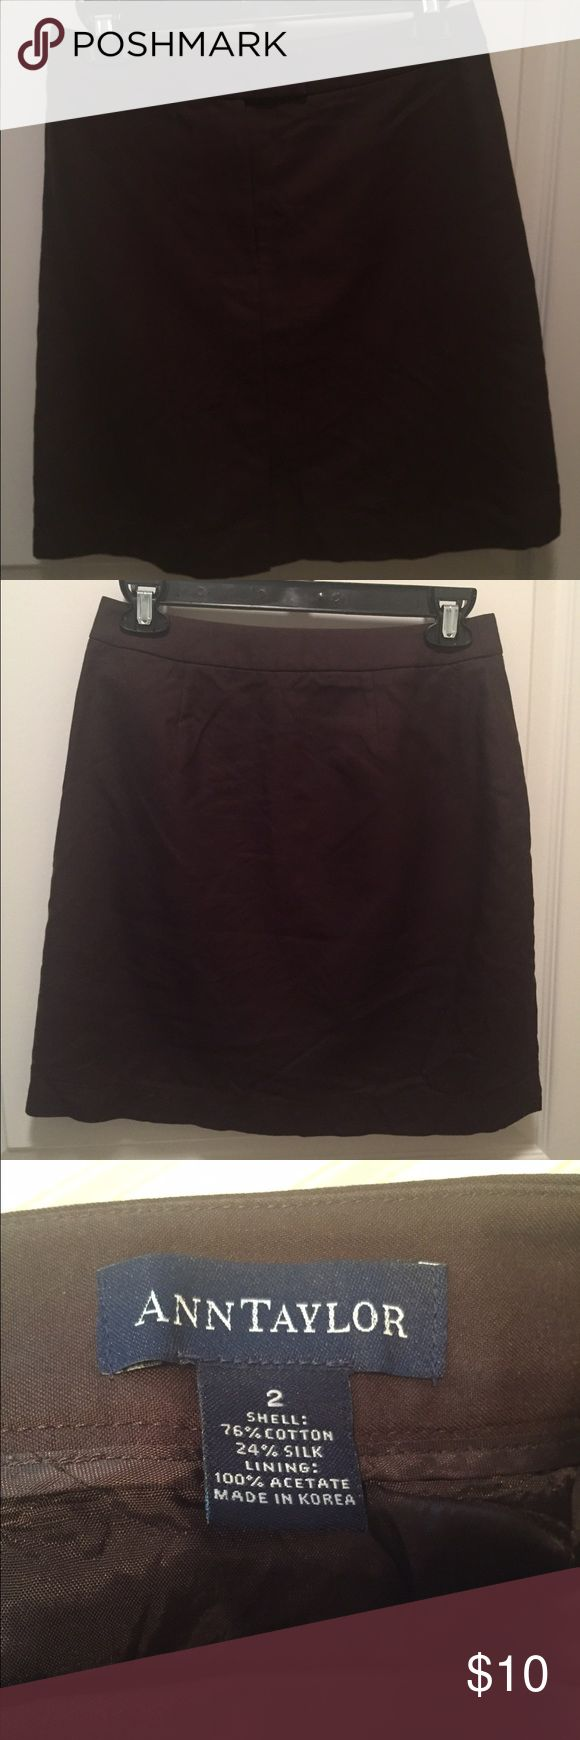 """ANN TAYLOR chocolate brown pencil skirt size 2 Cute brown pencil skirt. It's lined. Dry clean only. Chocolate brown color. Has a slight flap at the bottom of the skirt! Gently worn, in great condition! Waist lying flat is about 13"""". Length is about 18.5"""" Ann Taylor Skirts Pencil"""